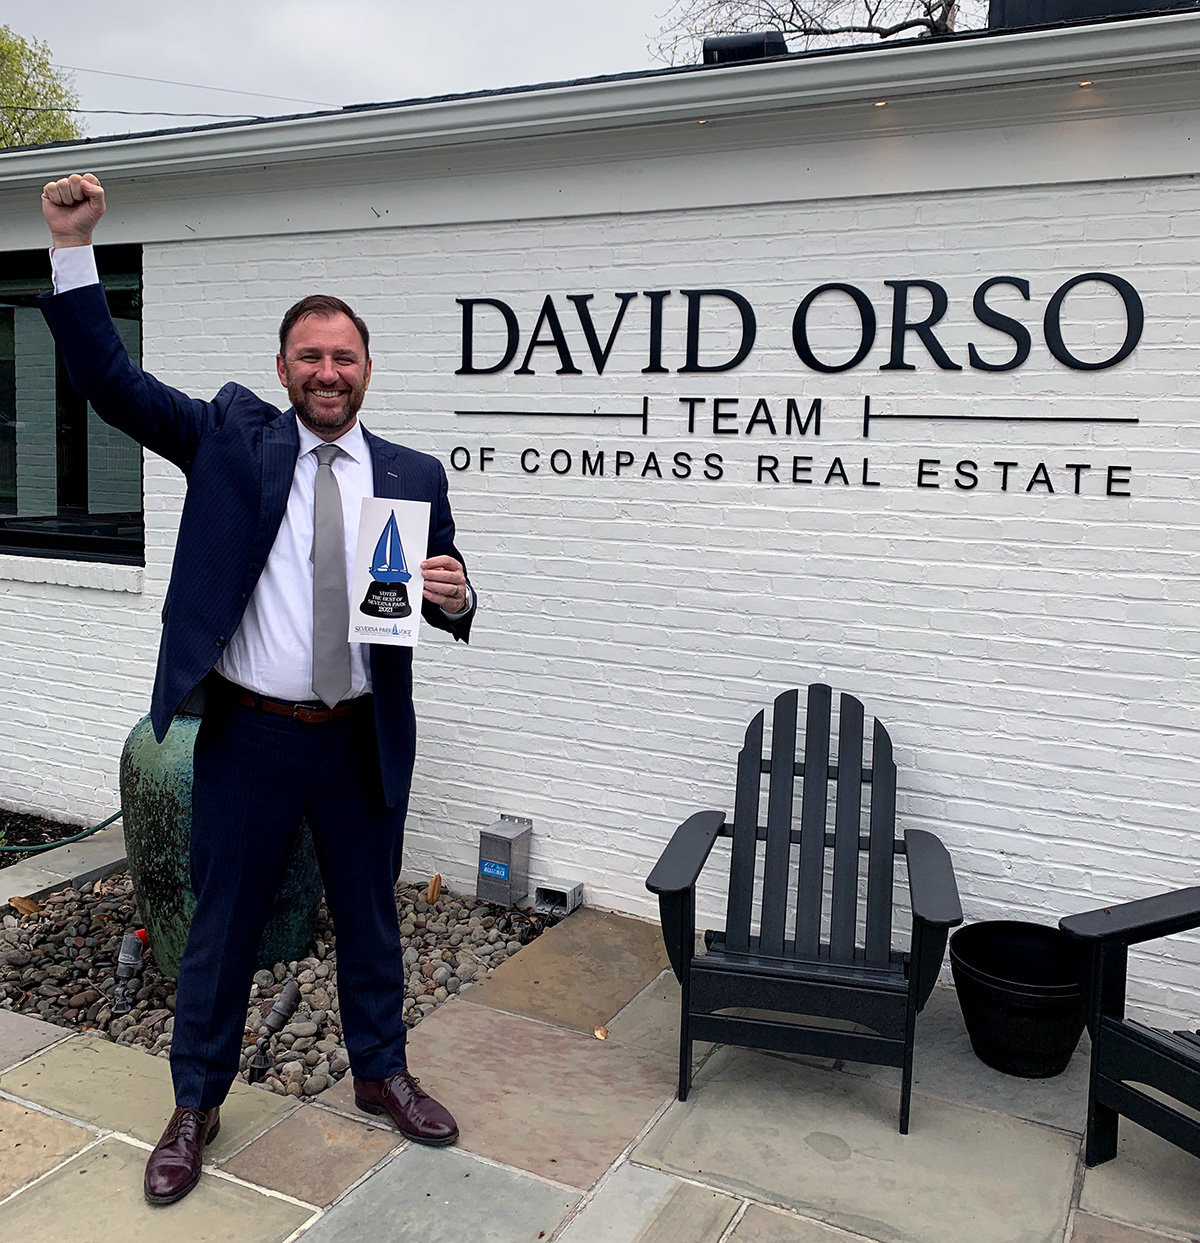 David Orso (The David Orso Team of Compass Real Estate ) was named Best Real Estate Agent.